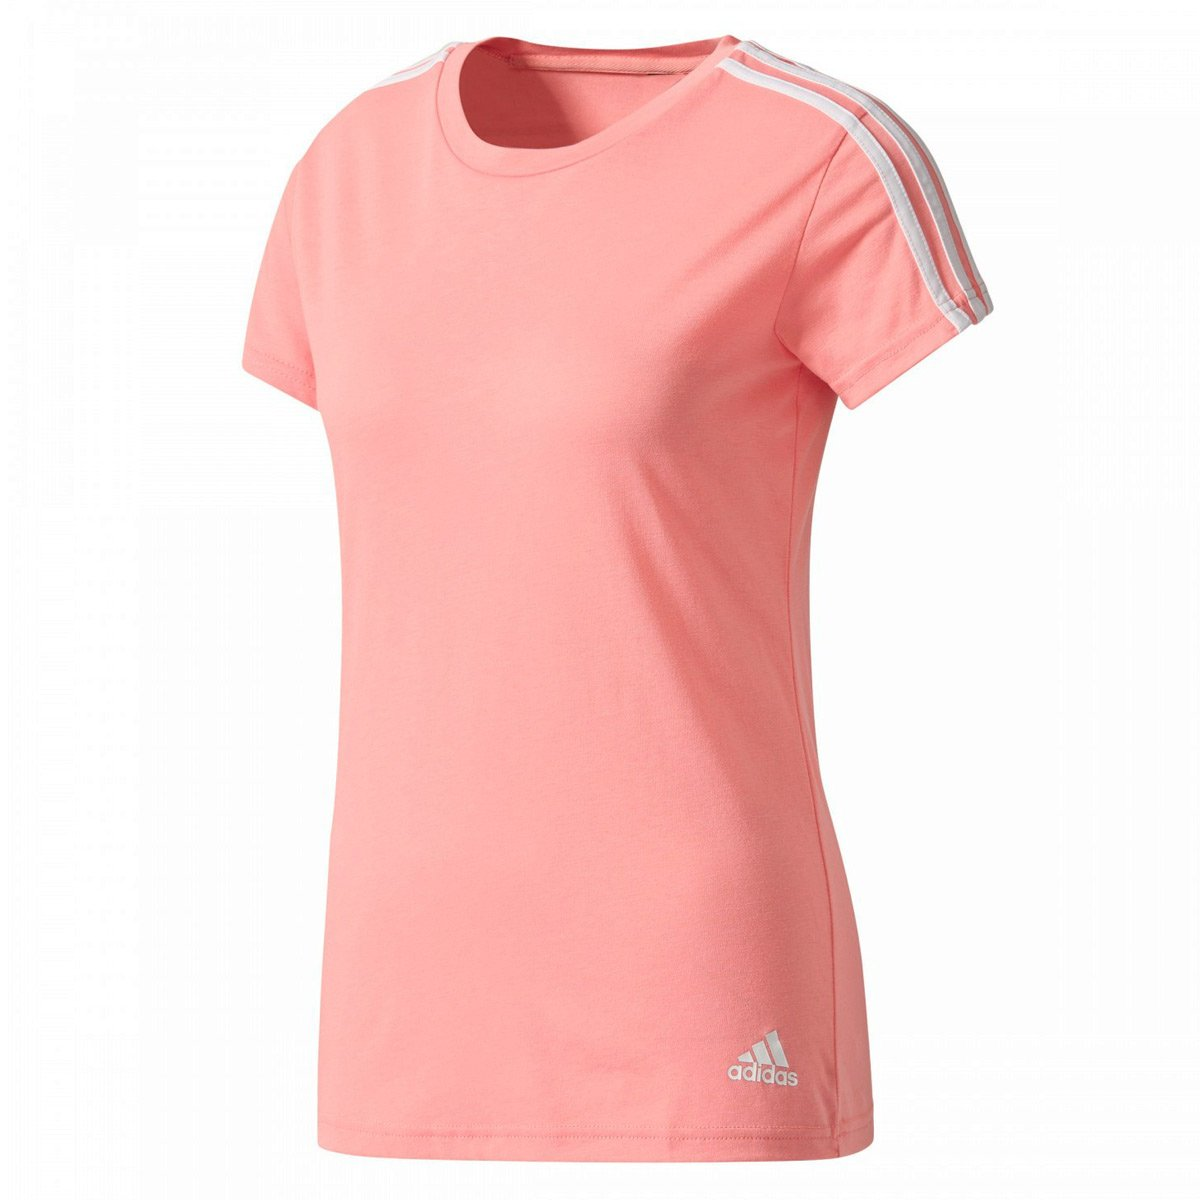 f810396bd2a Camiseta Adidas Essentials 3 Stripes Feminina